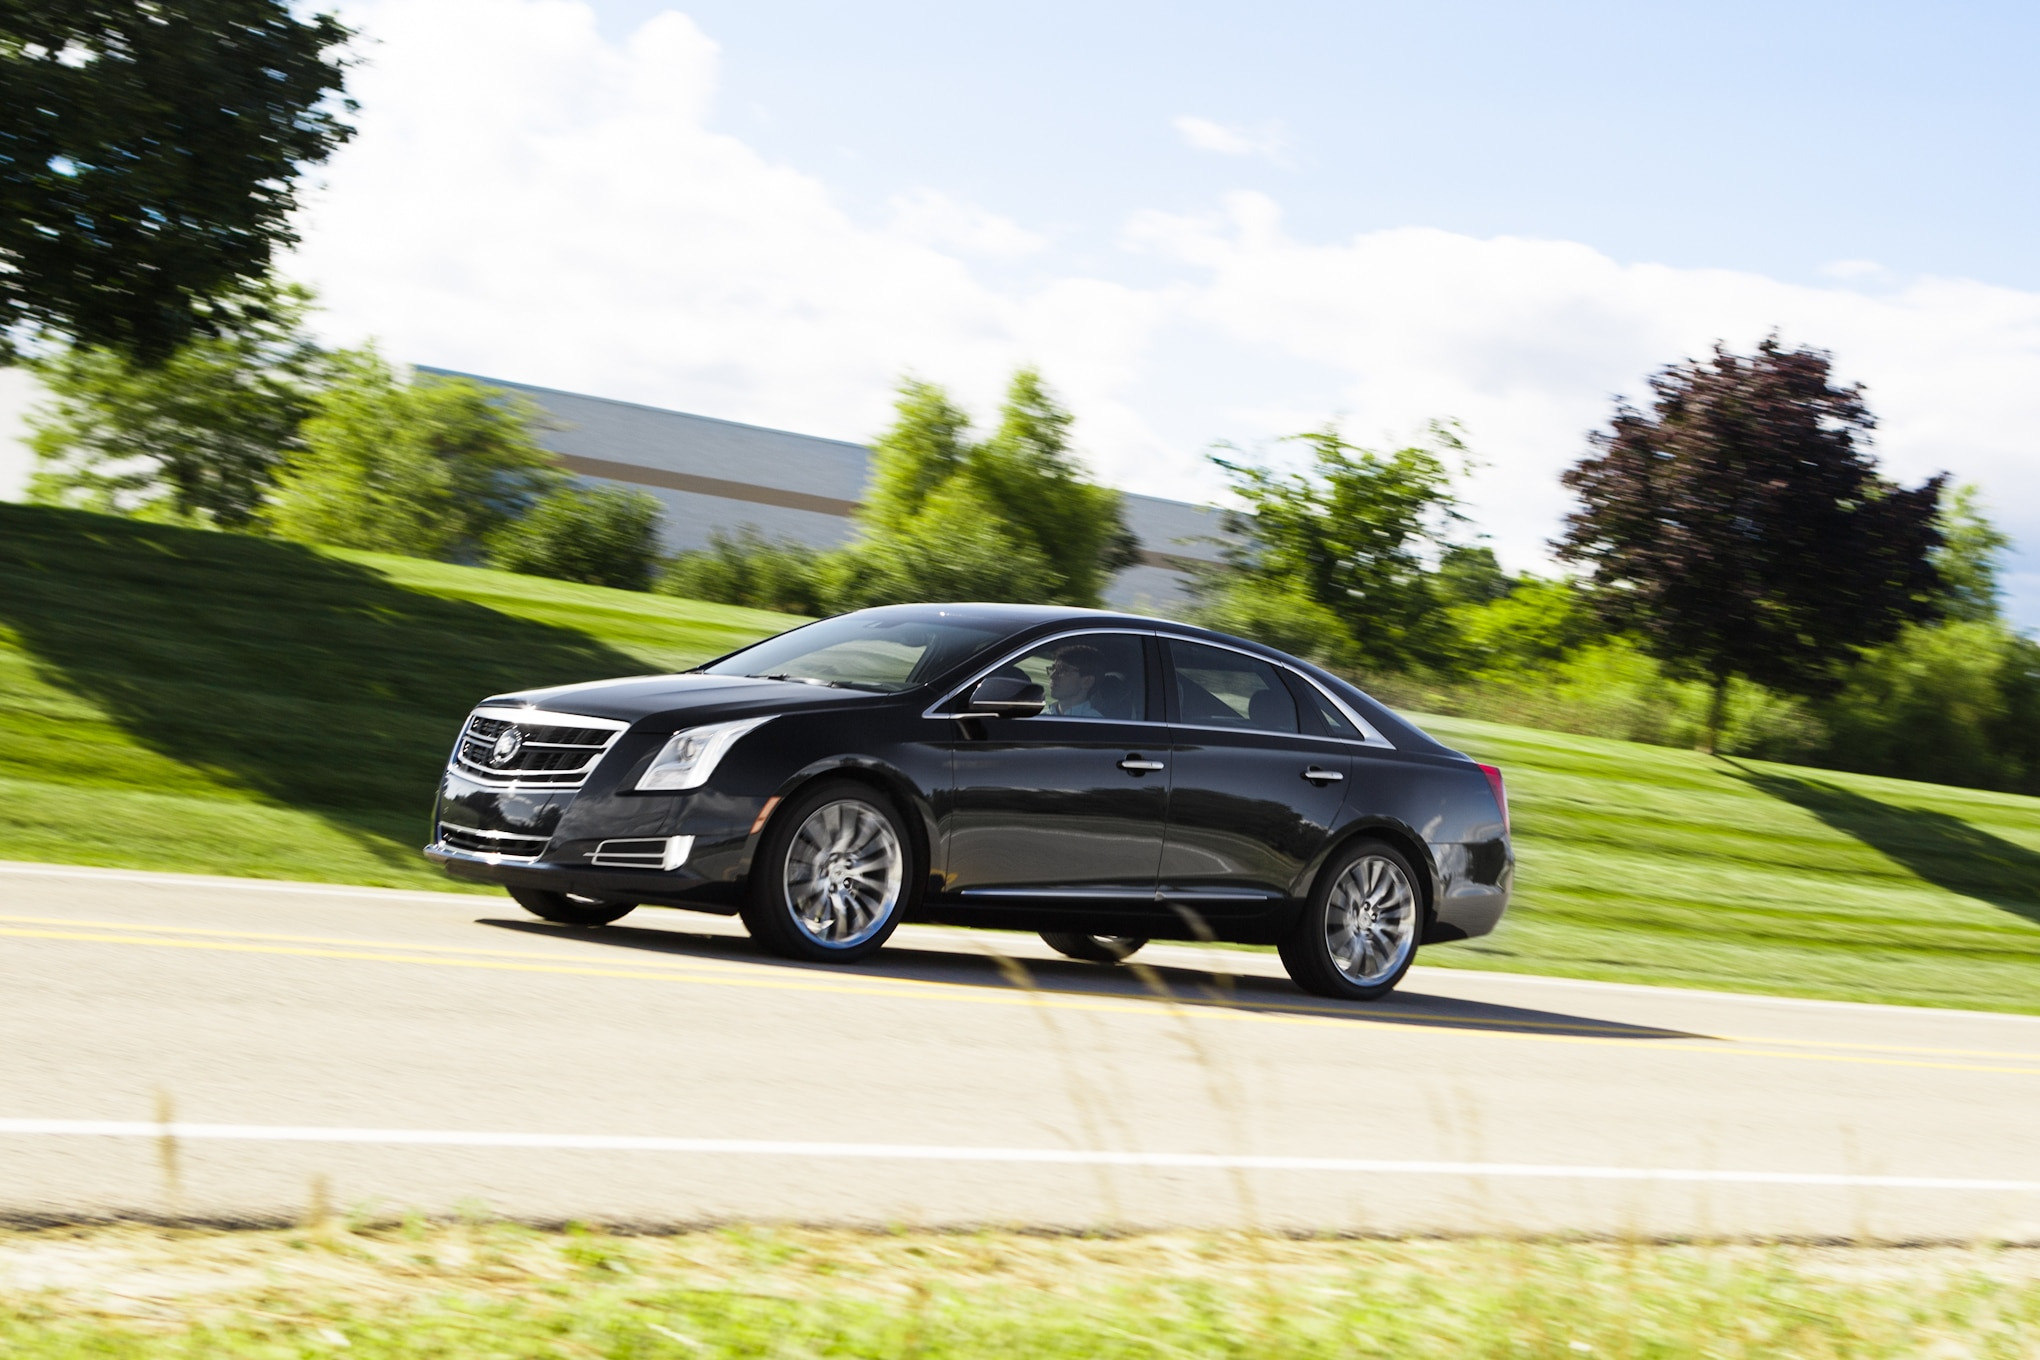 2014 Cadillac XTS V Sport Front Left Side View Lead1